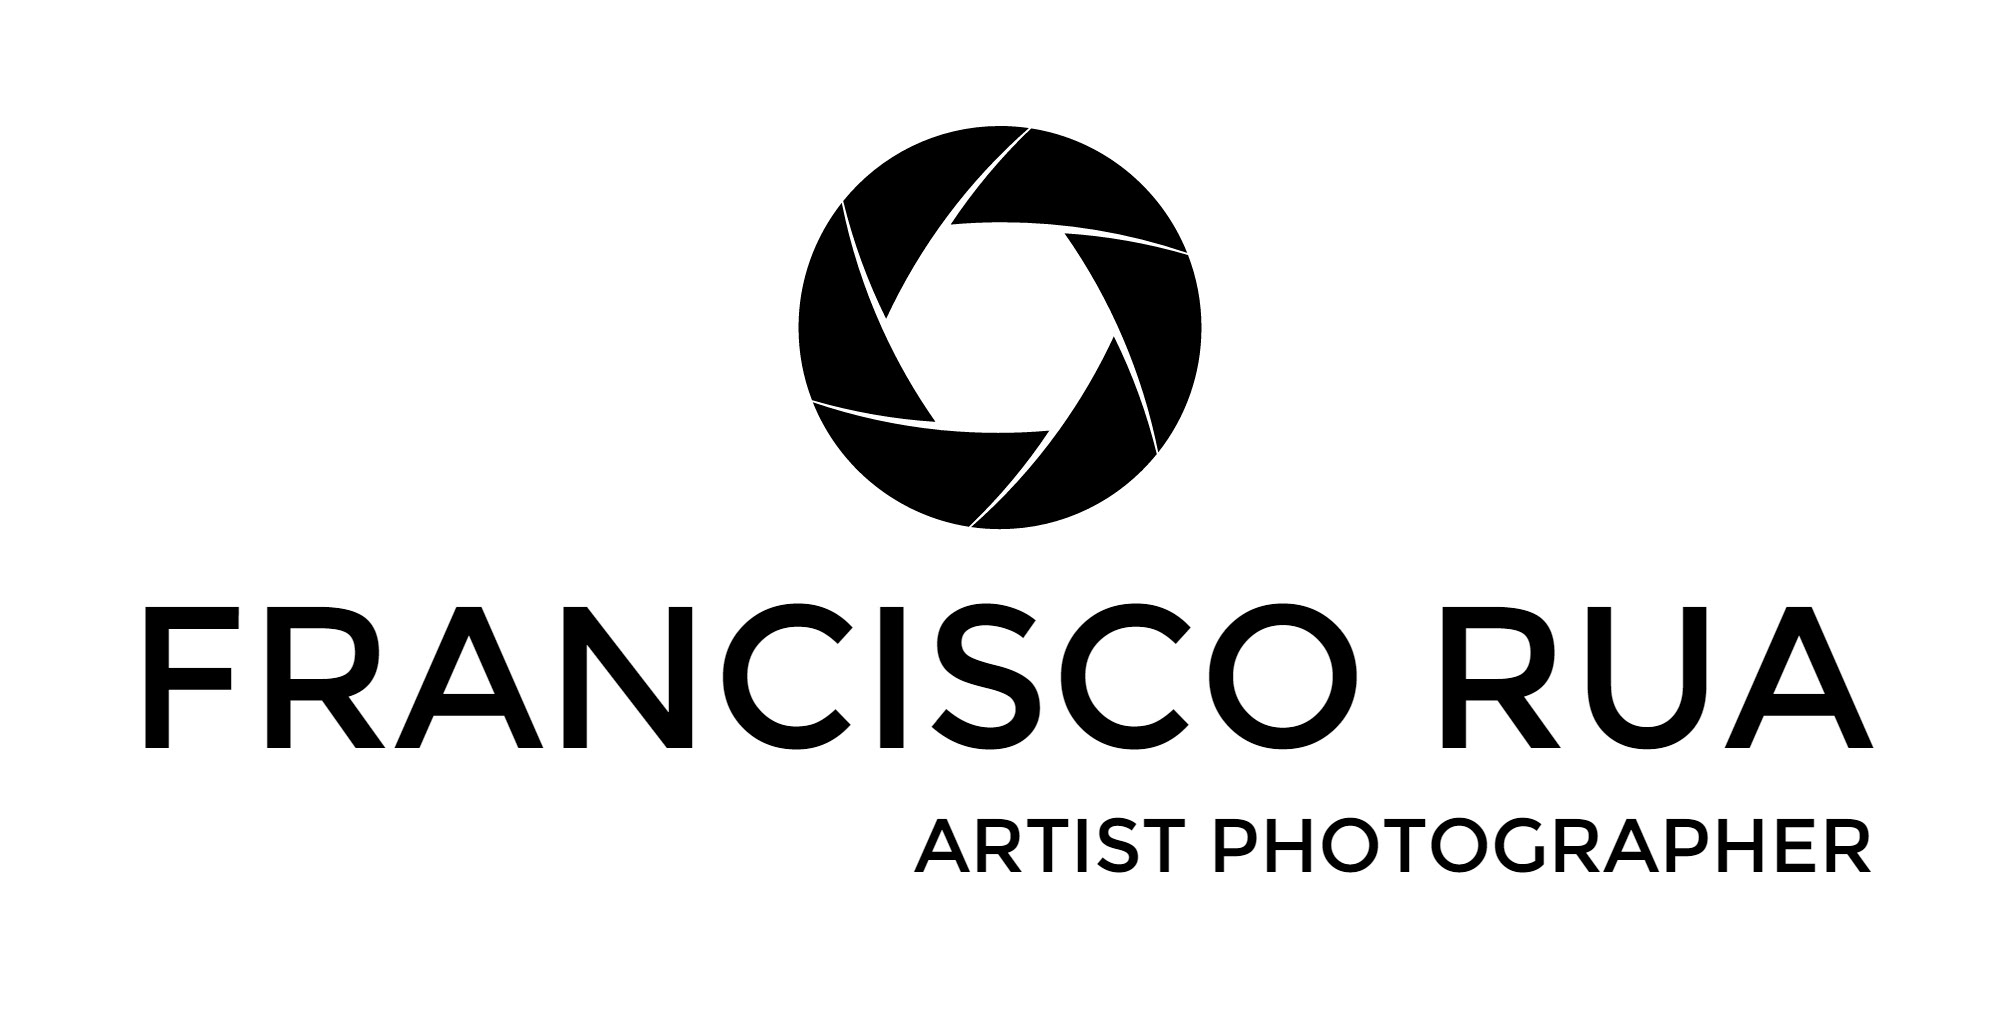 Francisco Rua - Artist Photographer